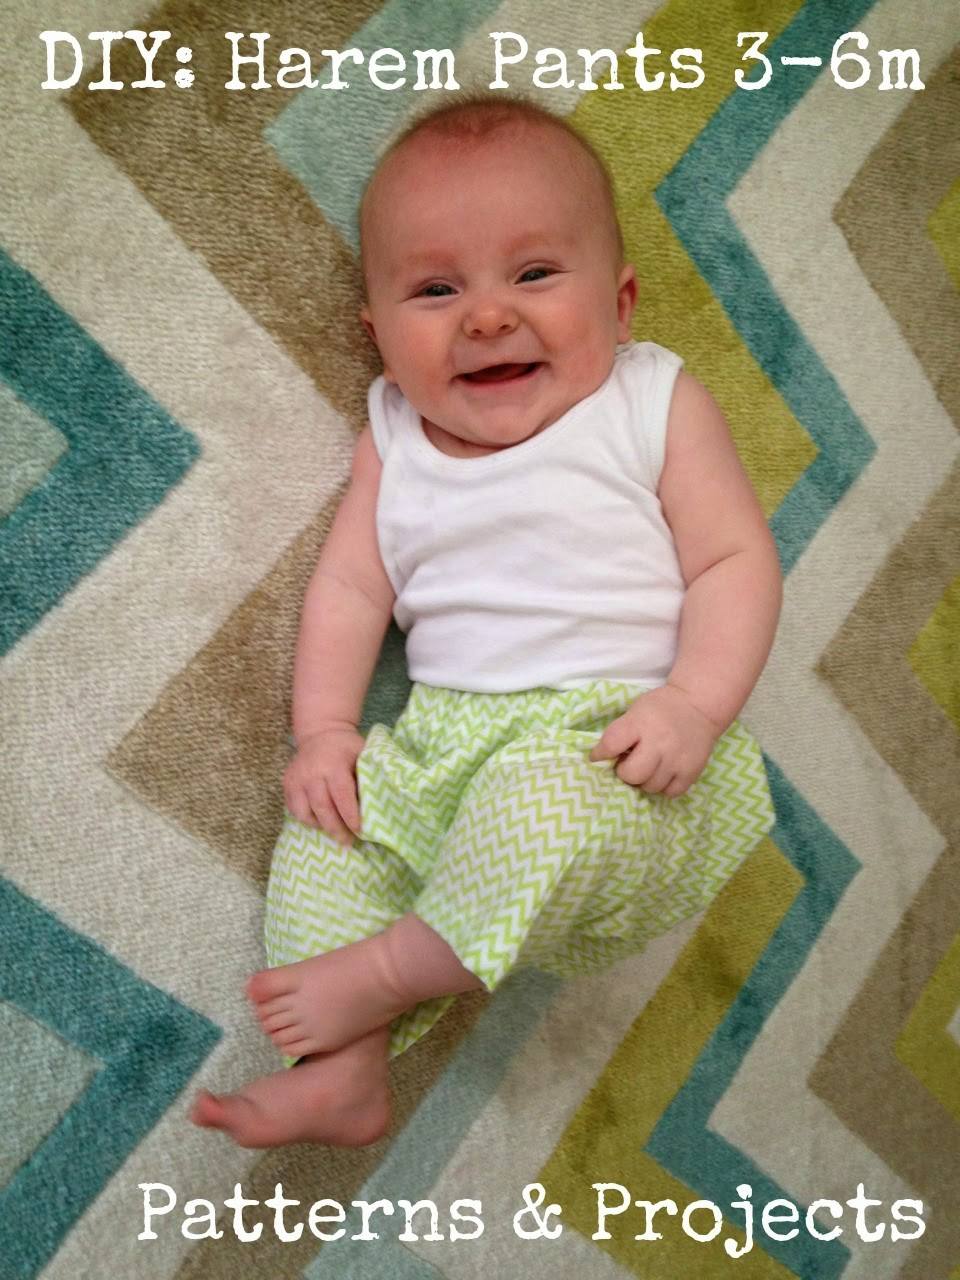 DIY Harem Pants | Mabey She Made It | #sewing #sewing for baby #harempants